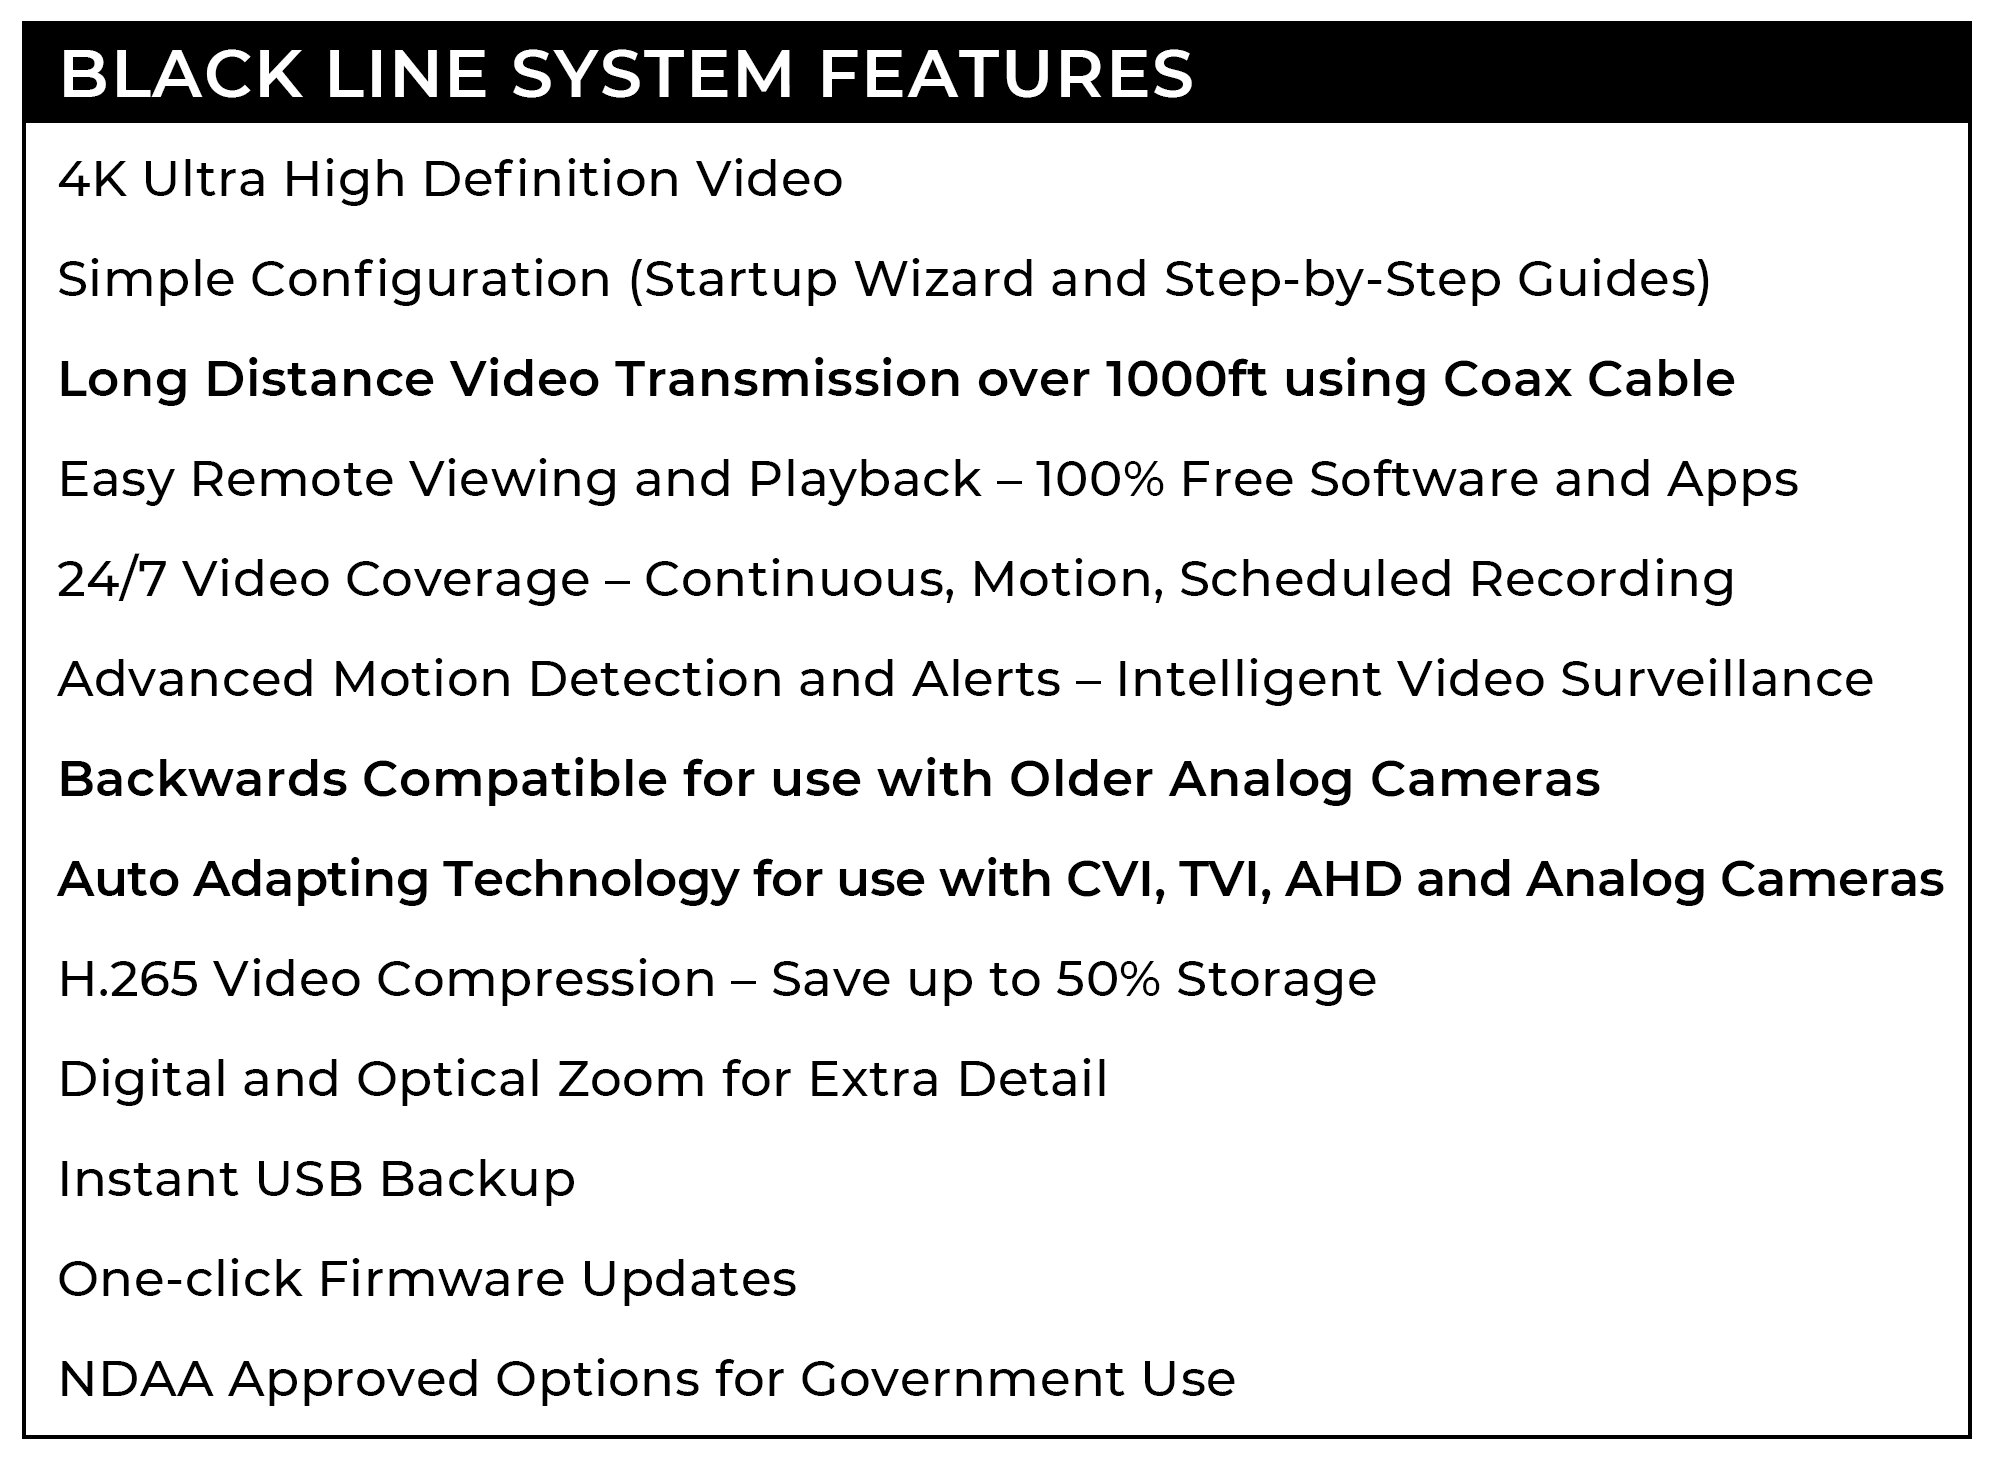 black-line-system-features2.png